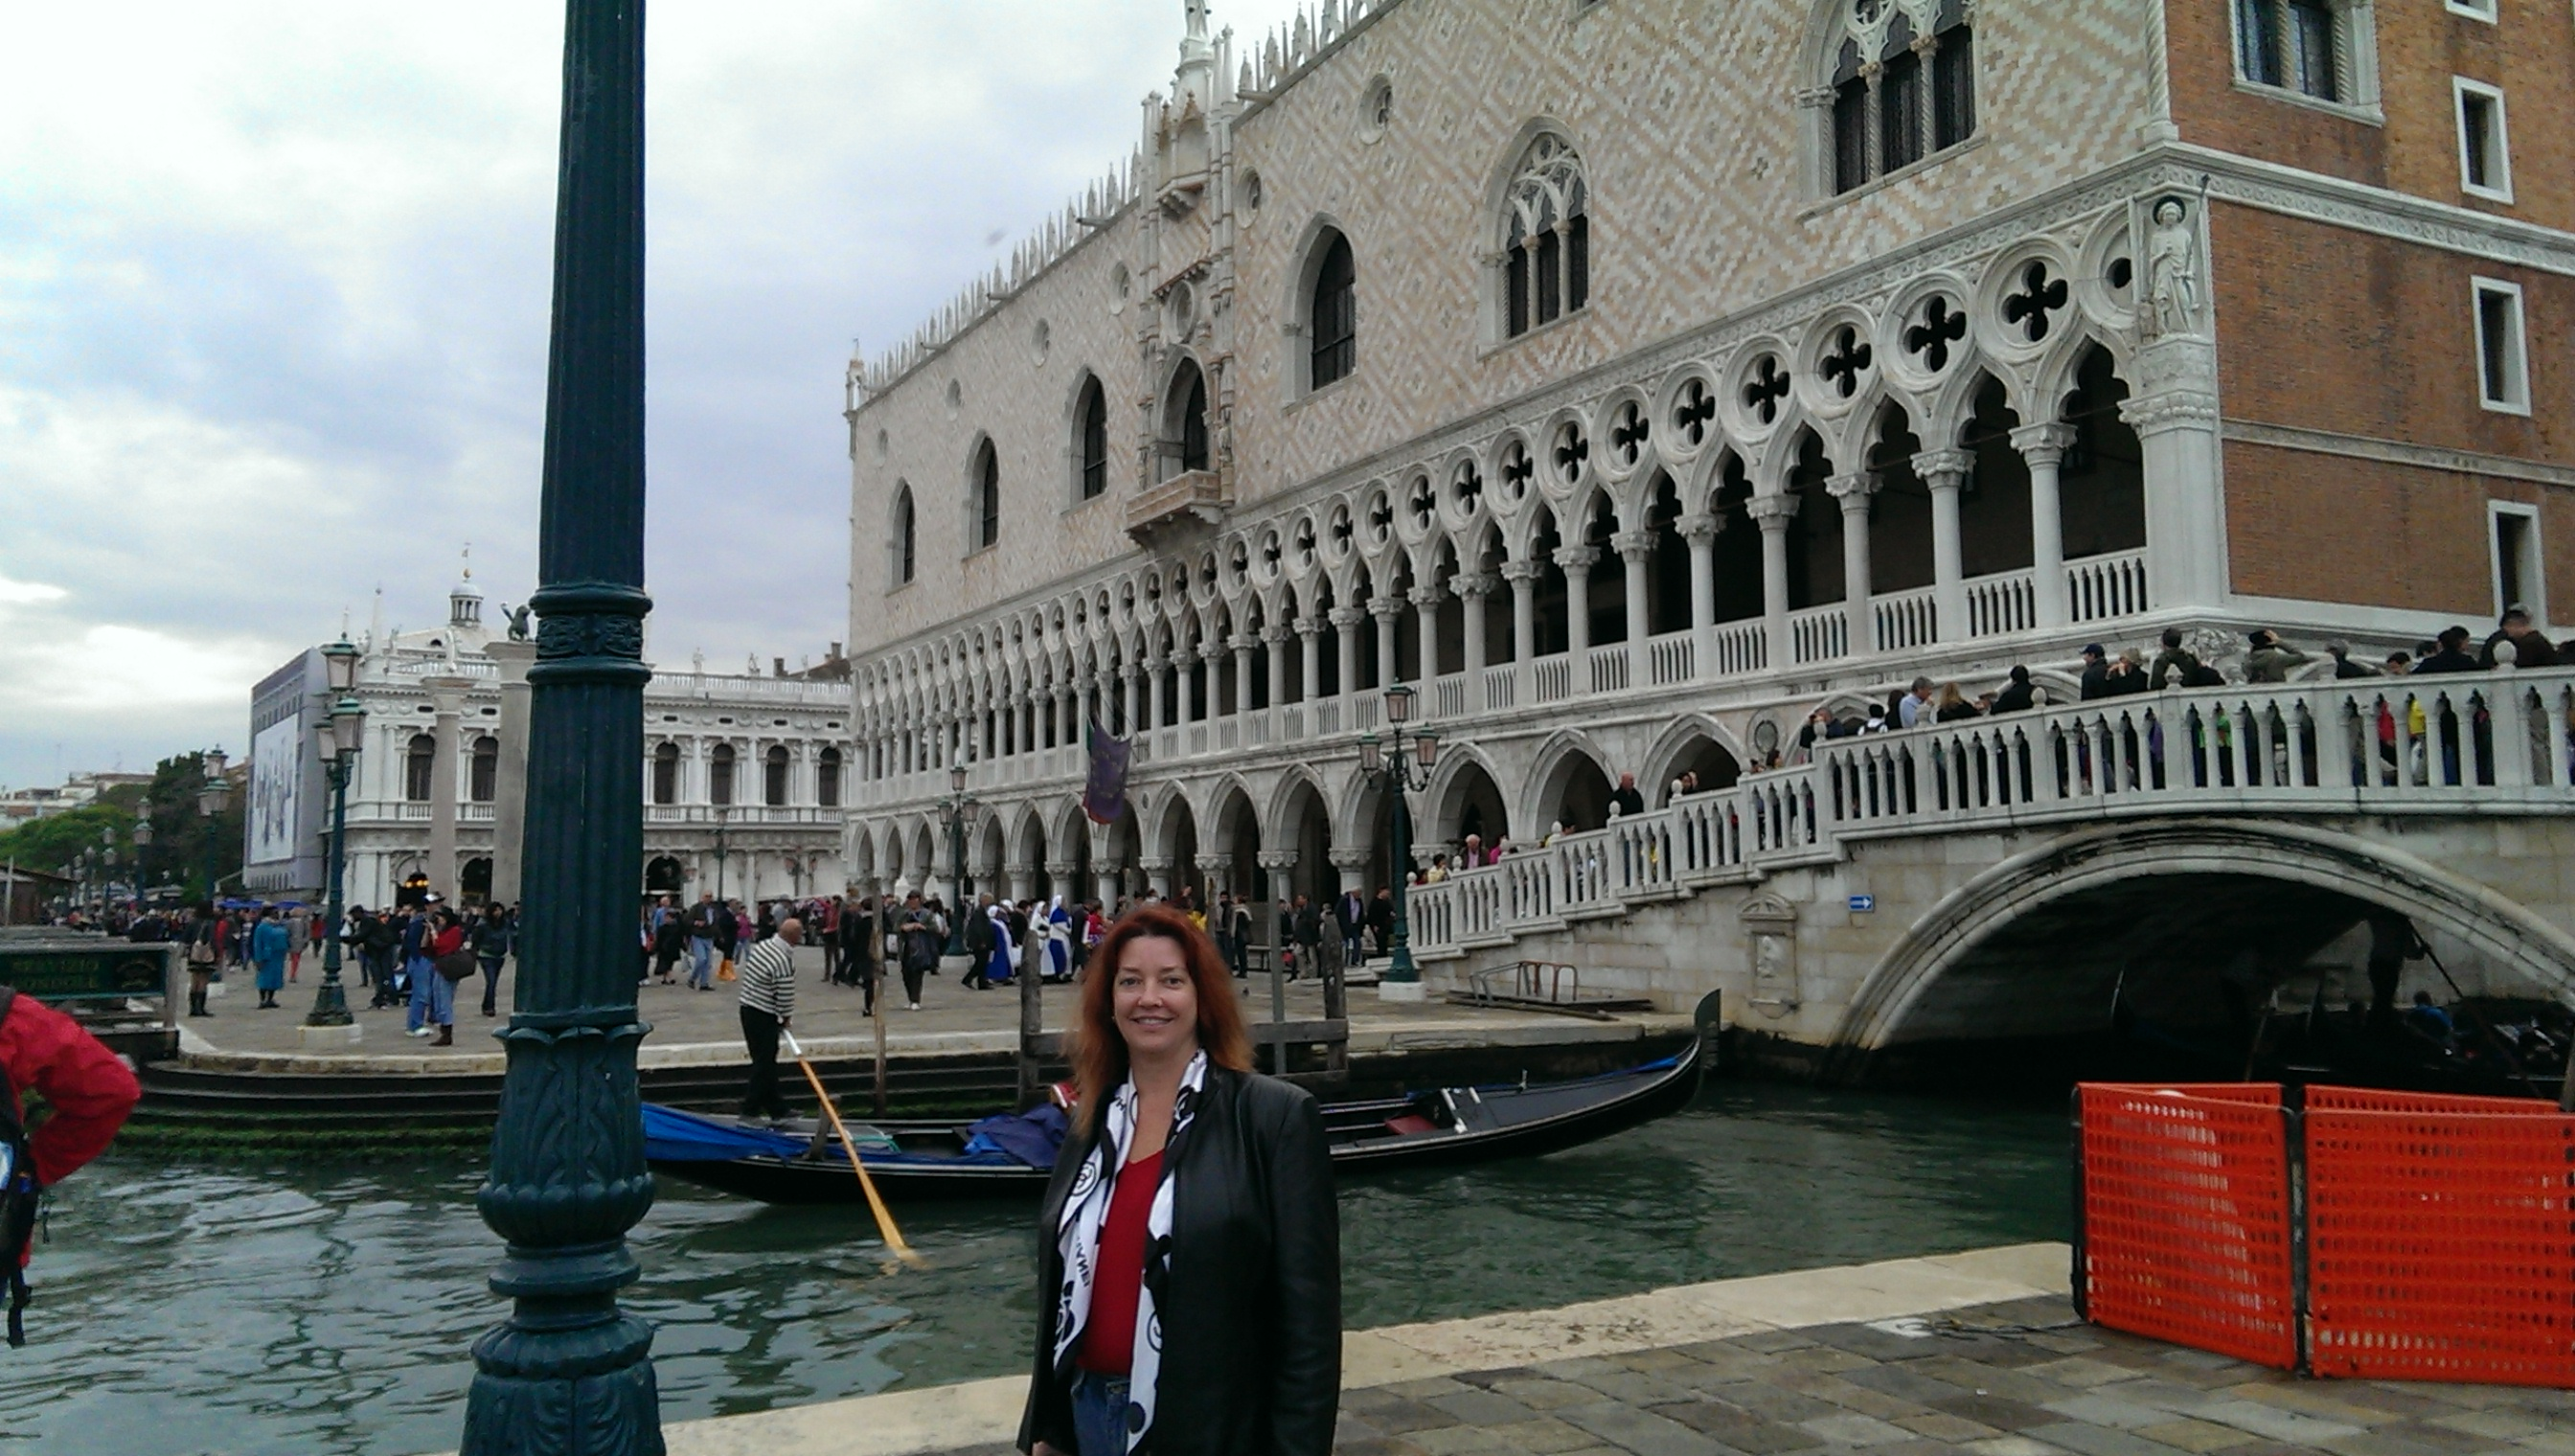 Tripps Travel Network Reviews Venice Italy (4)